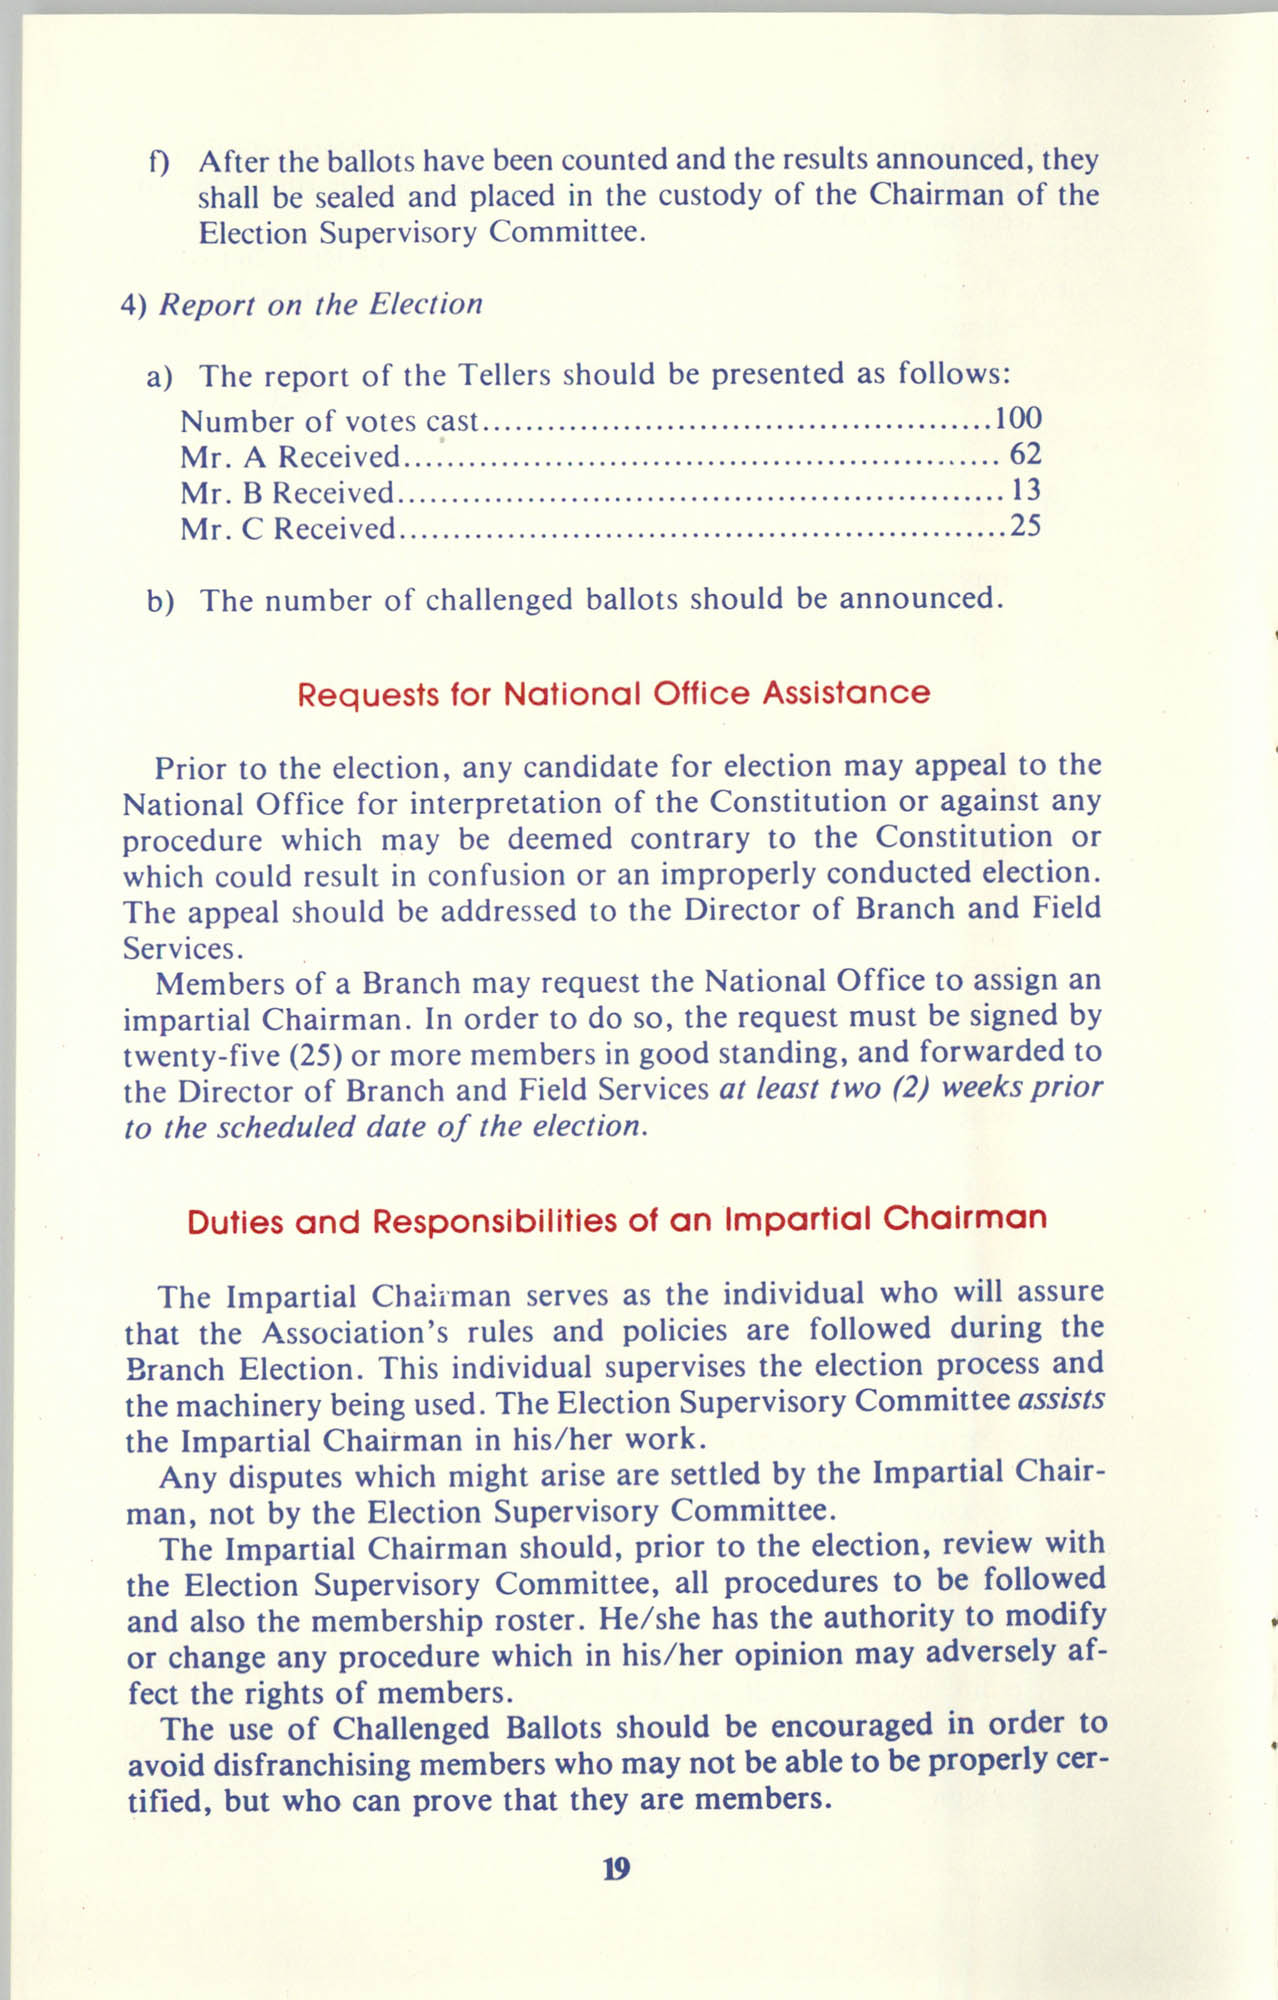 Manual on Branch Election Procedure, Page 19